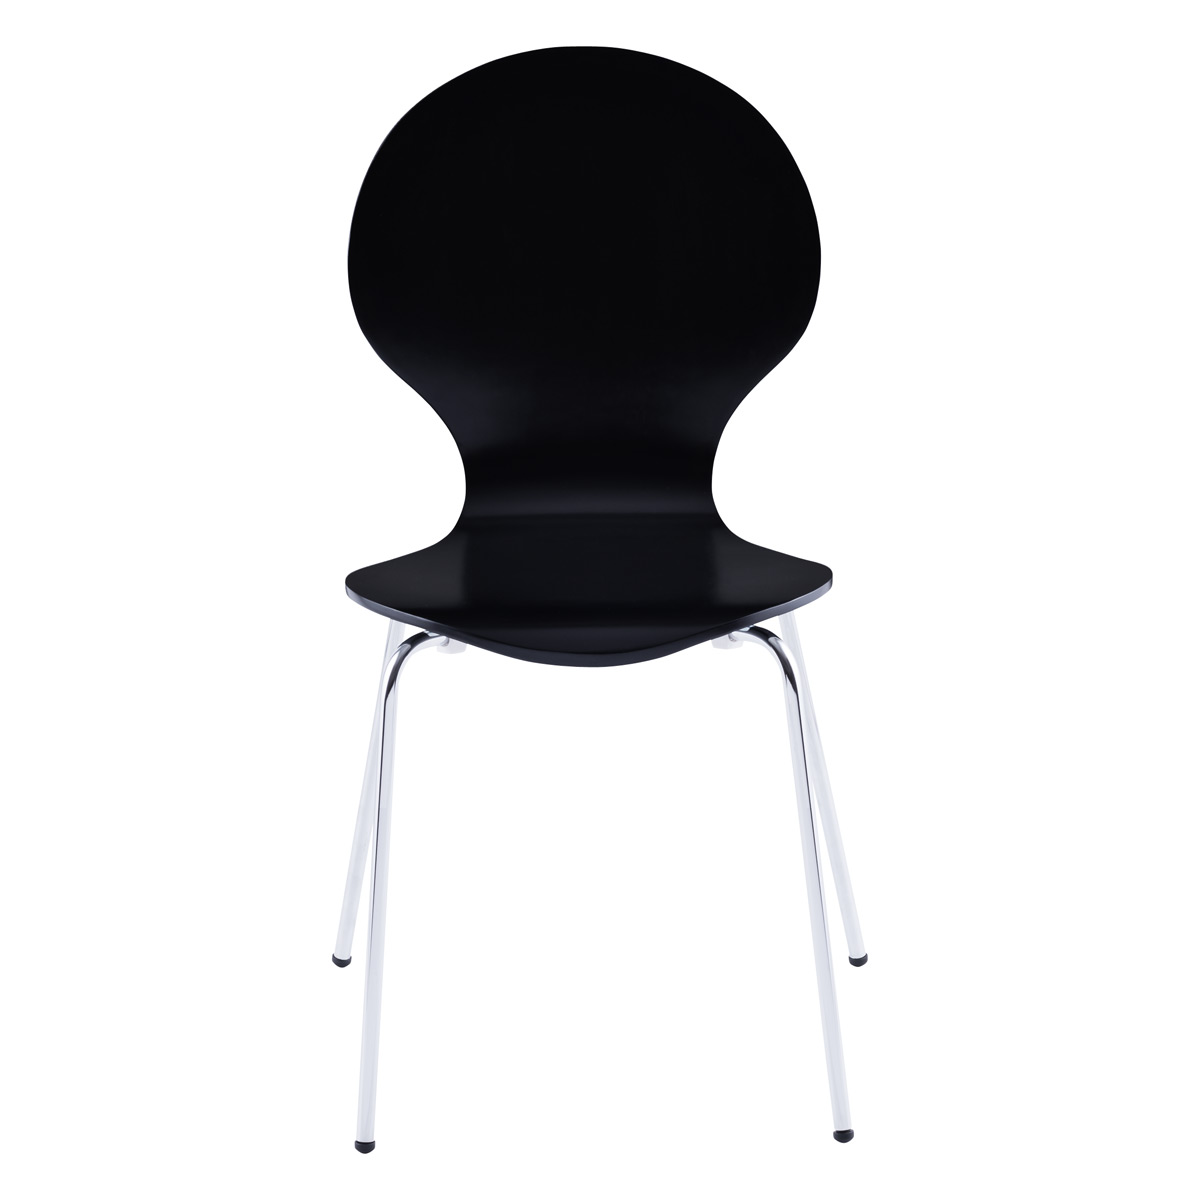 container store chair target mat black marcus the